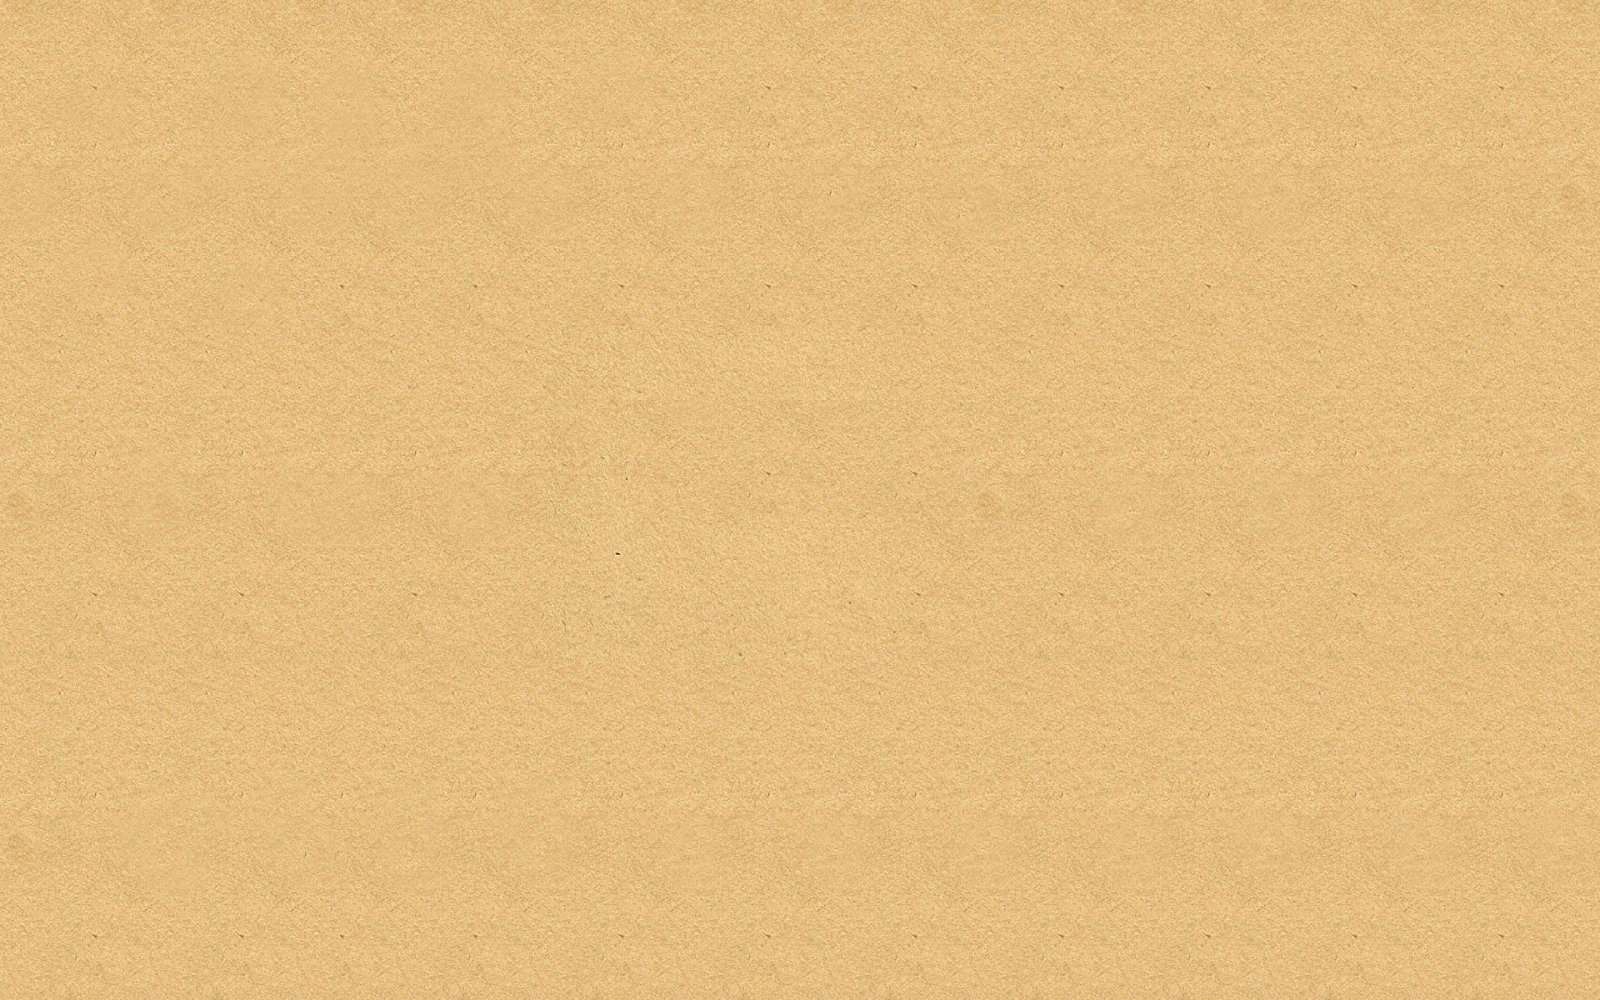 Butcher Paper Texture | www.imgkid.com - The Image Kid Has It!